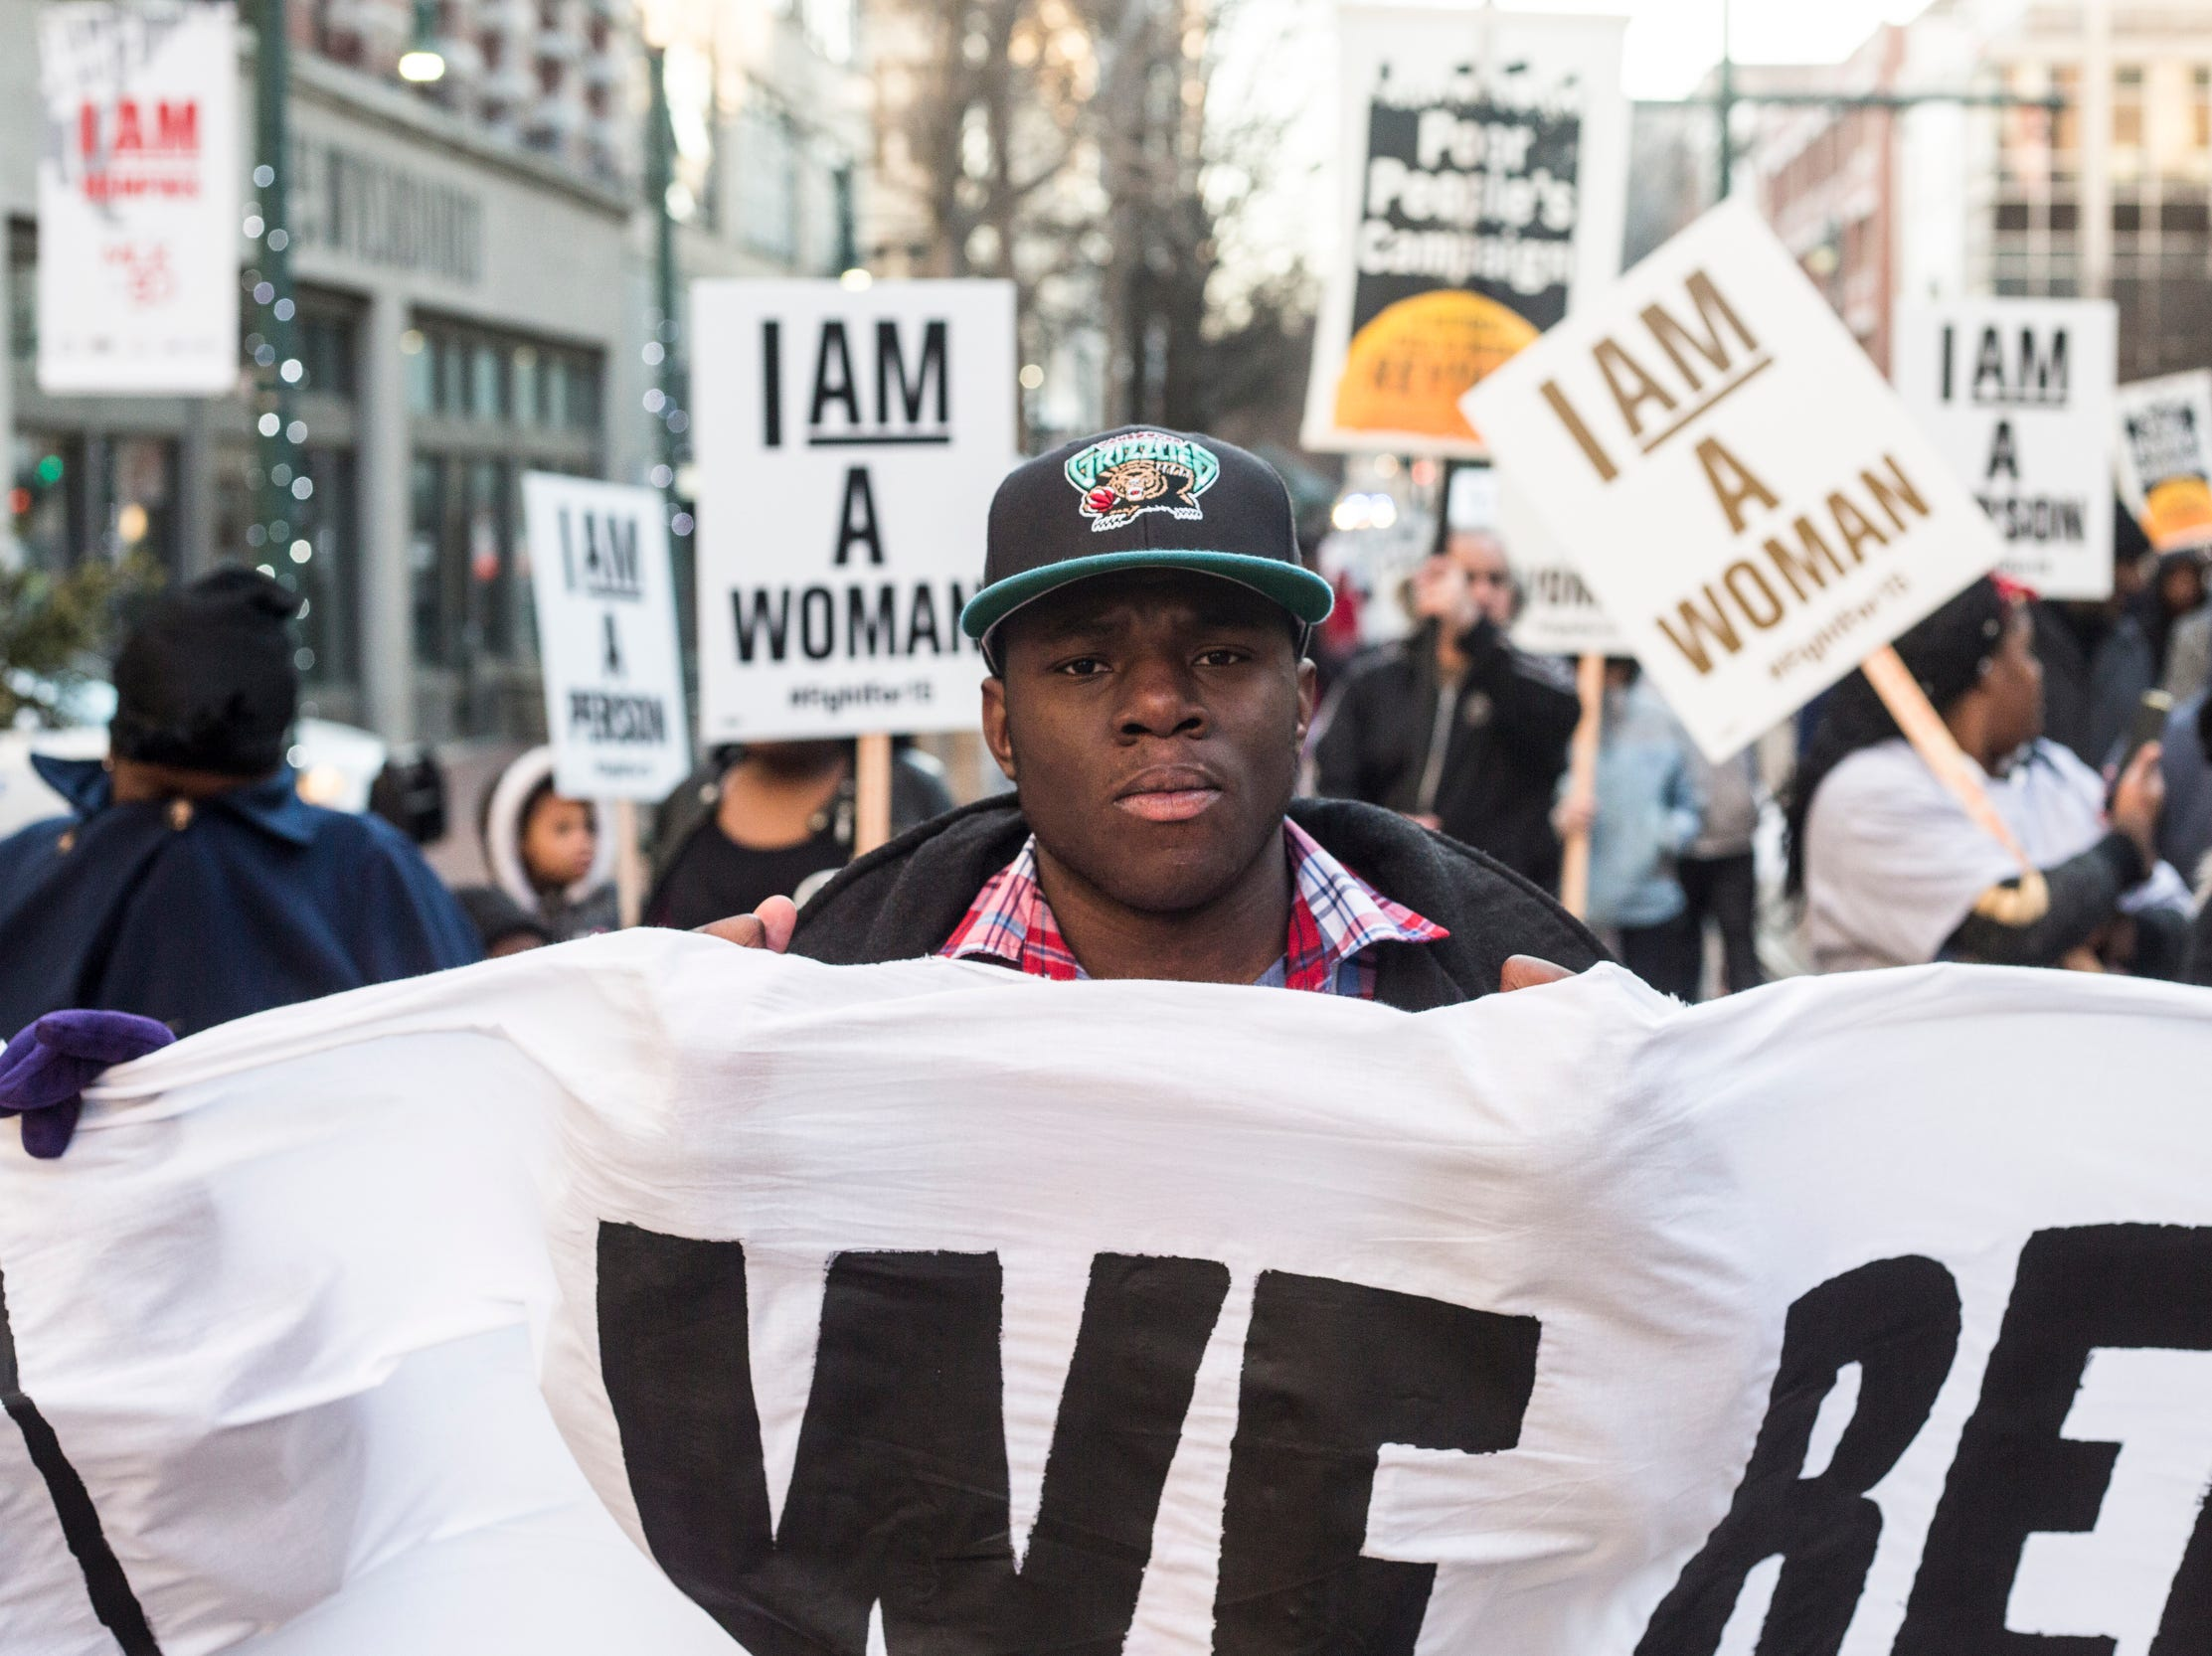 """February 12, 2018 - Ricky Epps marches towards Memphis City Hall, following the same route taken by striking city sanitation workers 50 years before. A large crowd of people organized by the group Fight for $15 marched from Clayborn Temple to City Hall waving """"I Am A Man"""" and """"I Am A Woman"""" Signs and chanting slogans."""